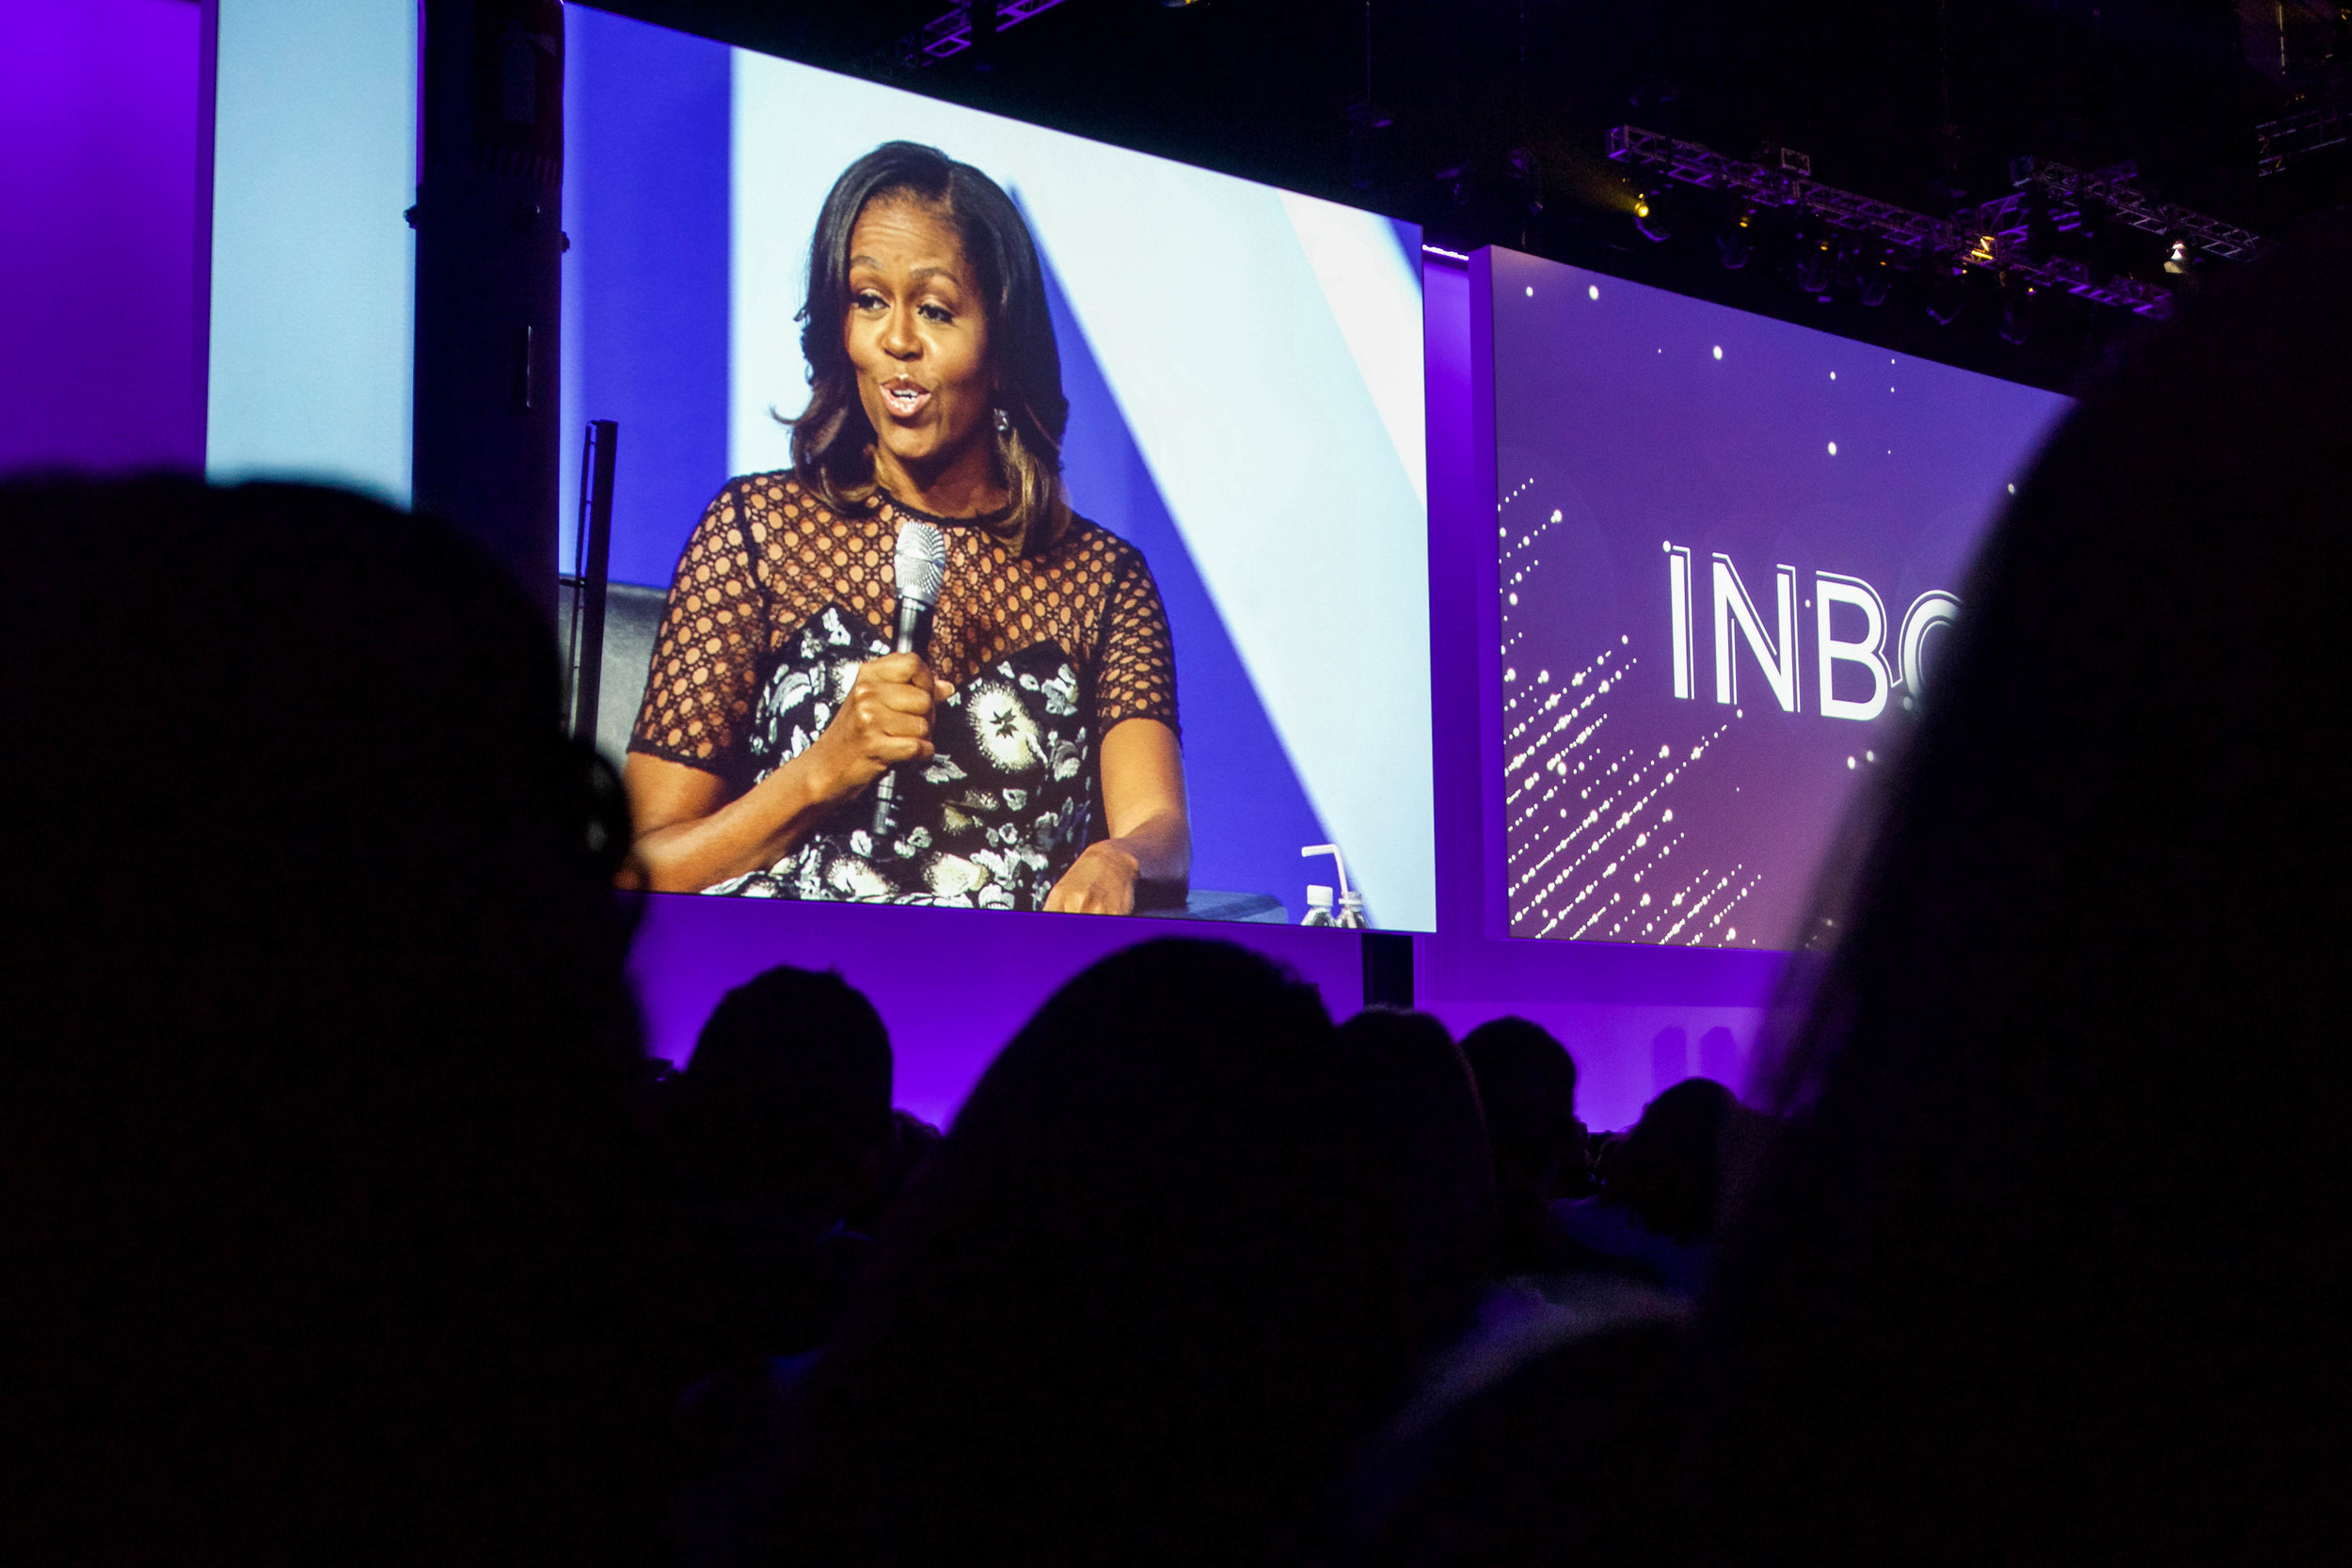 Michelle Obama at INBOUND 2017 - FLOTUS - first lady of the united states - interview with Roxane Gay.jpg